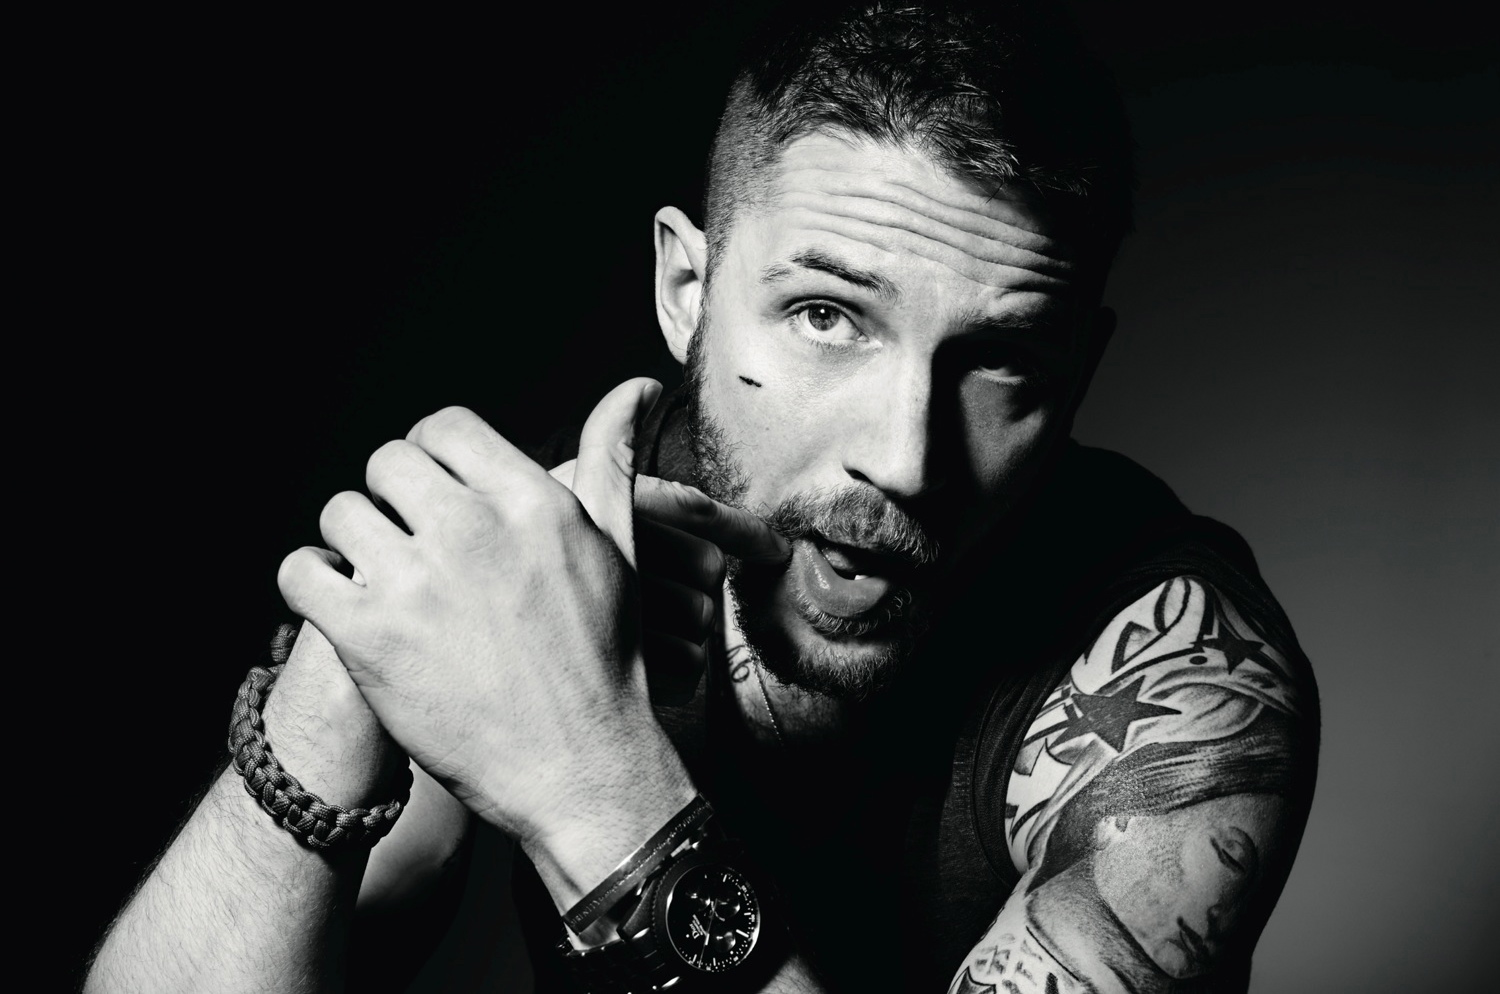 http://3.bp.blogspot.com/-1MT4dNcu3WQ/TtbDVcMRCNI/AAAAAAAAmTQ/K4Im4IYHSOI/s1600/New-Photoshoot-interview-Dark-Knight-tom-hardy-24491484-1500-994.jpg